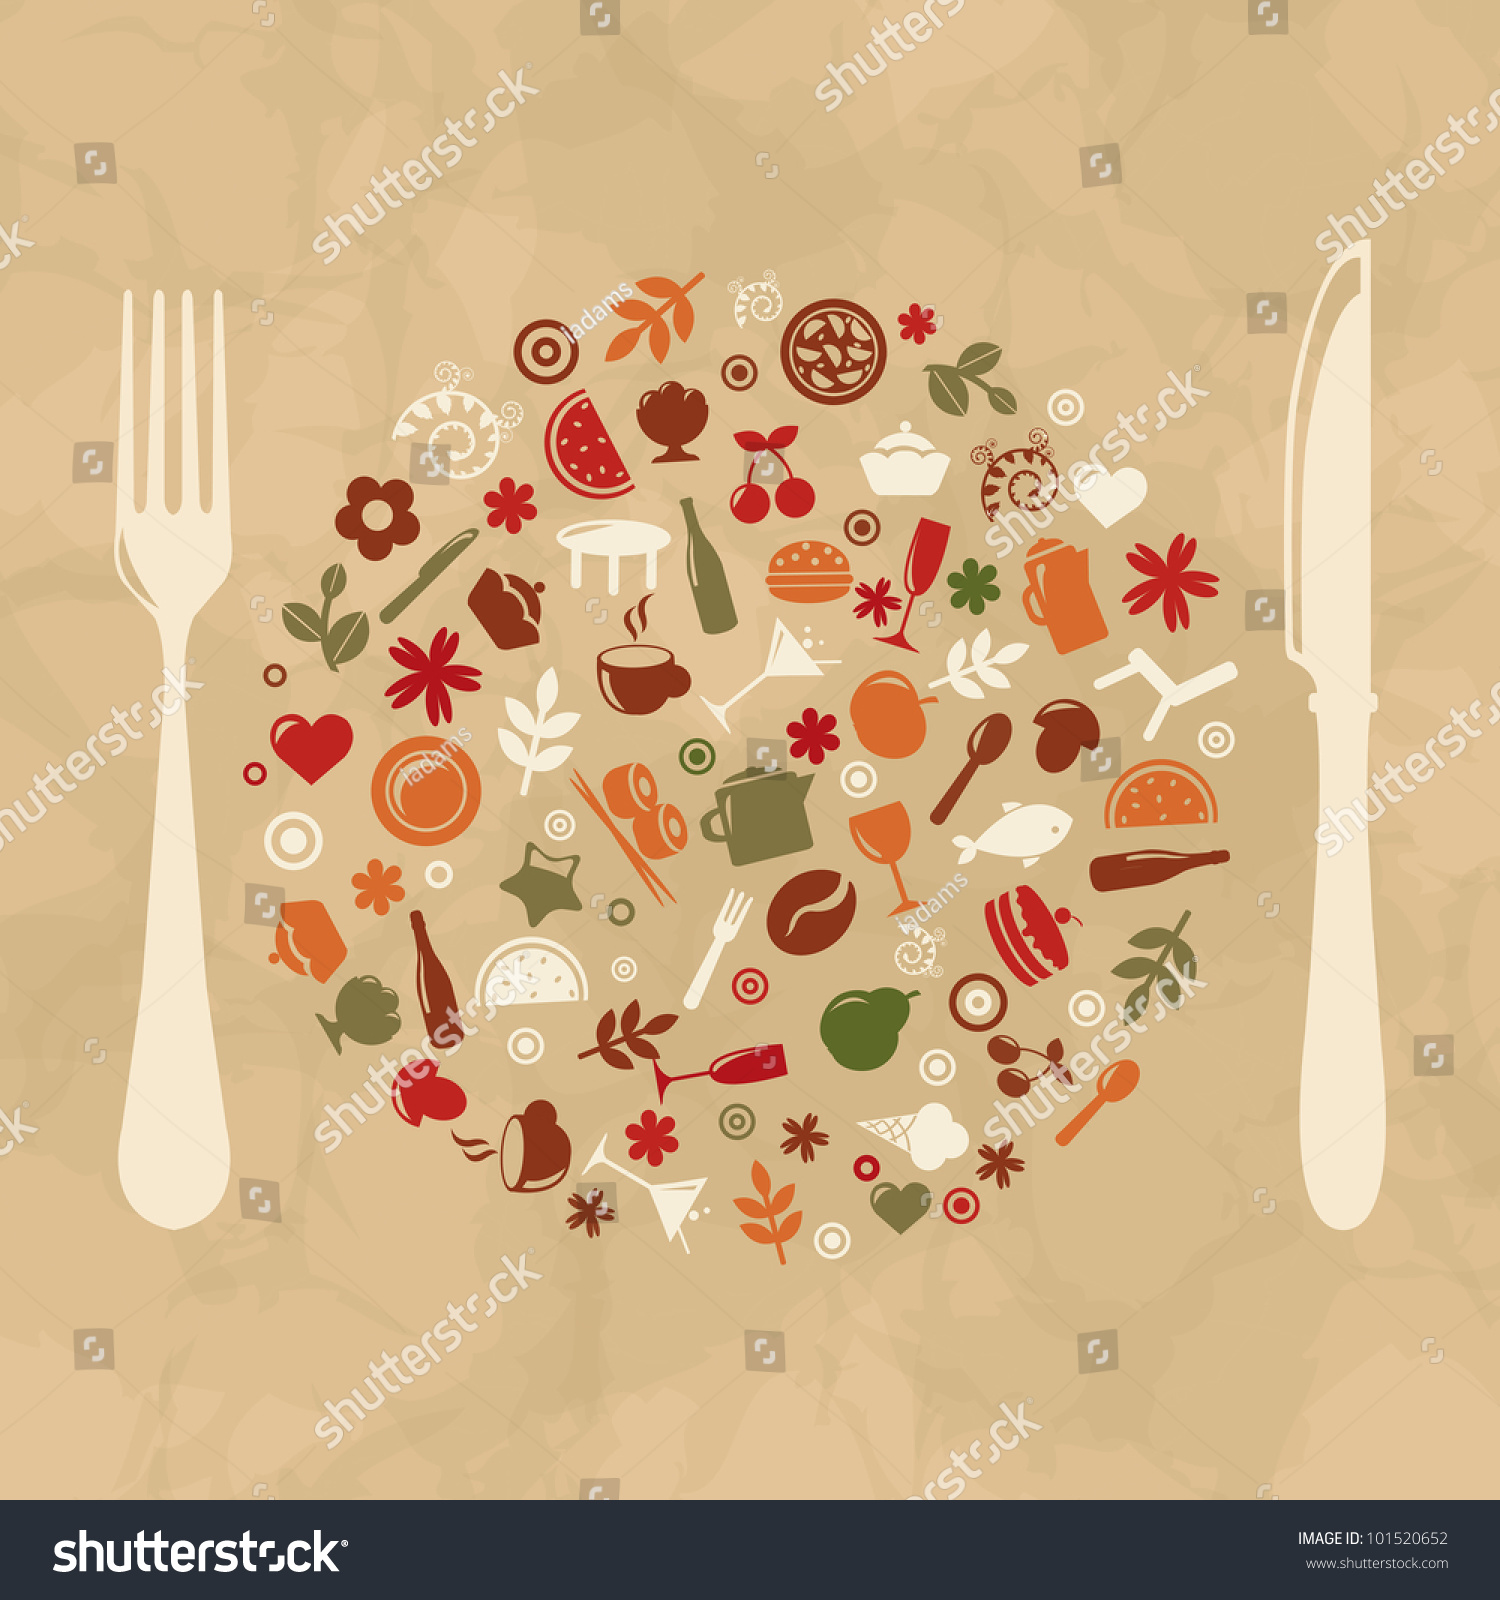 Vintage restaurant design old paper vector illustration